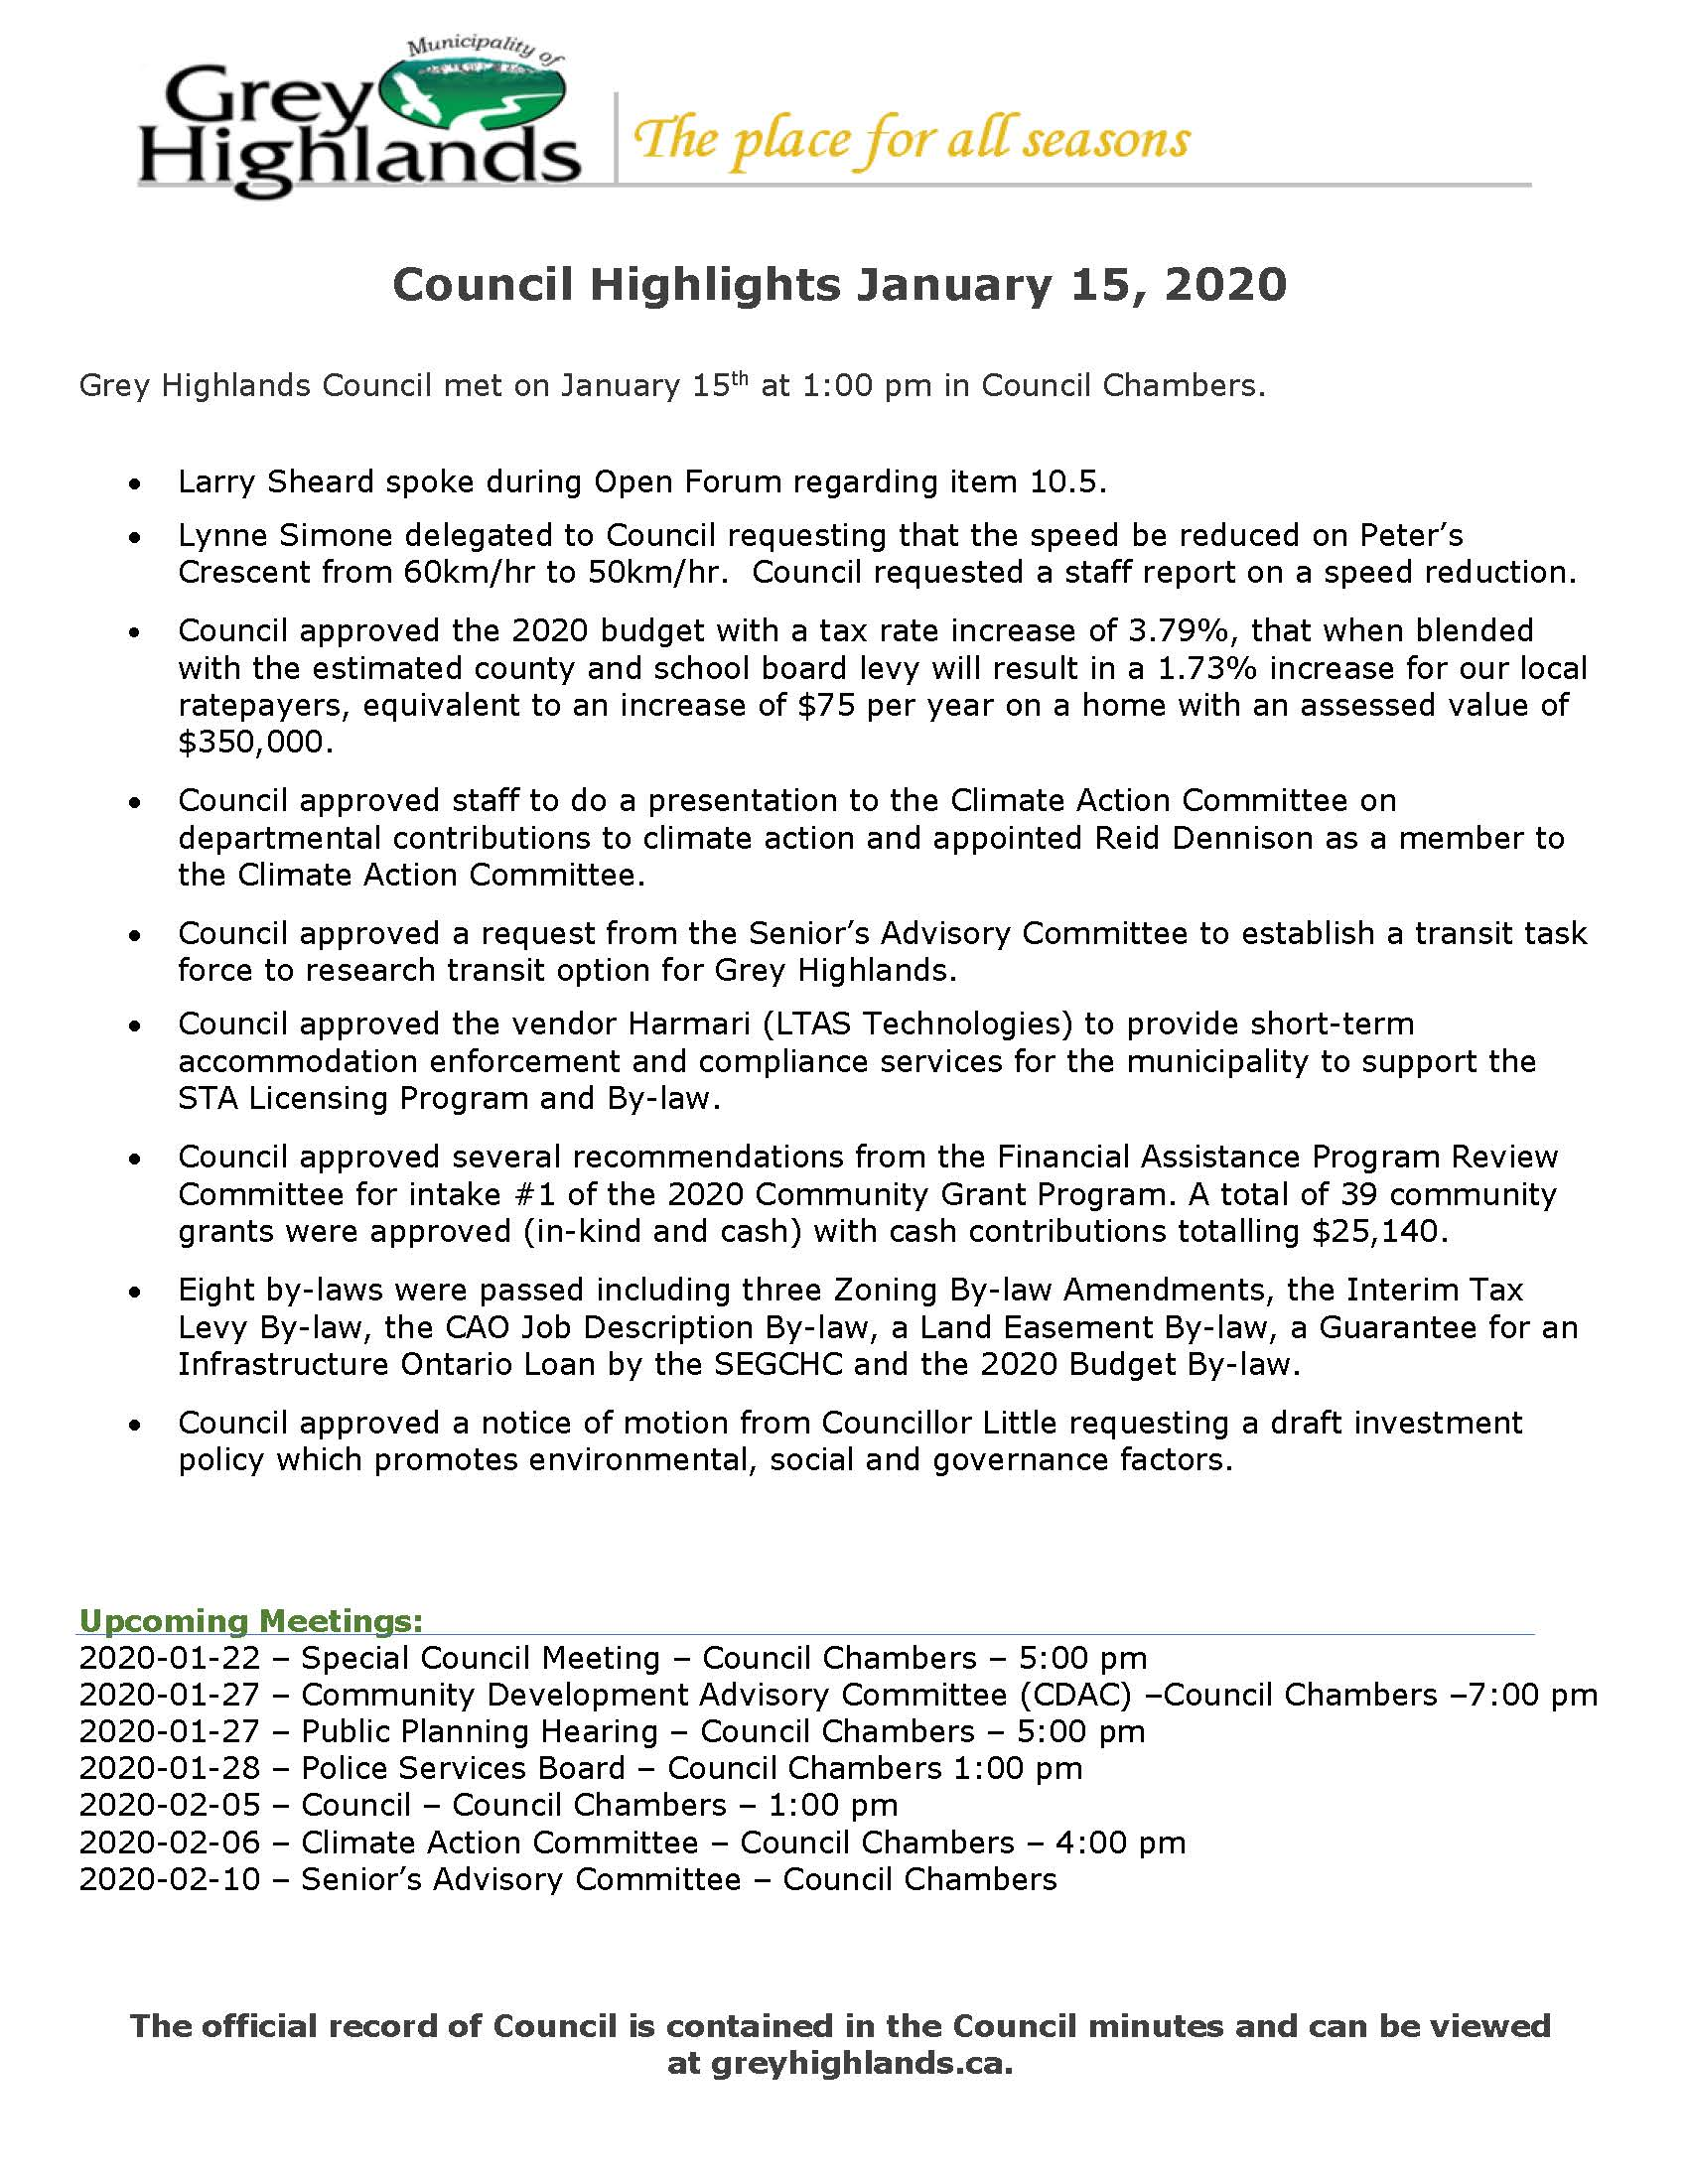 Council Highlights - January 15, 2020